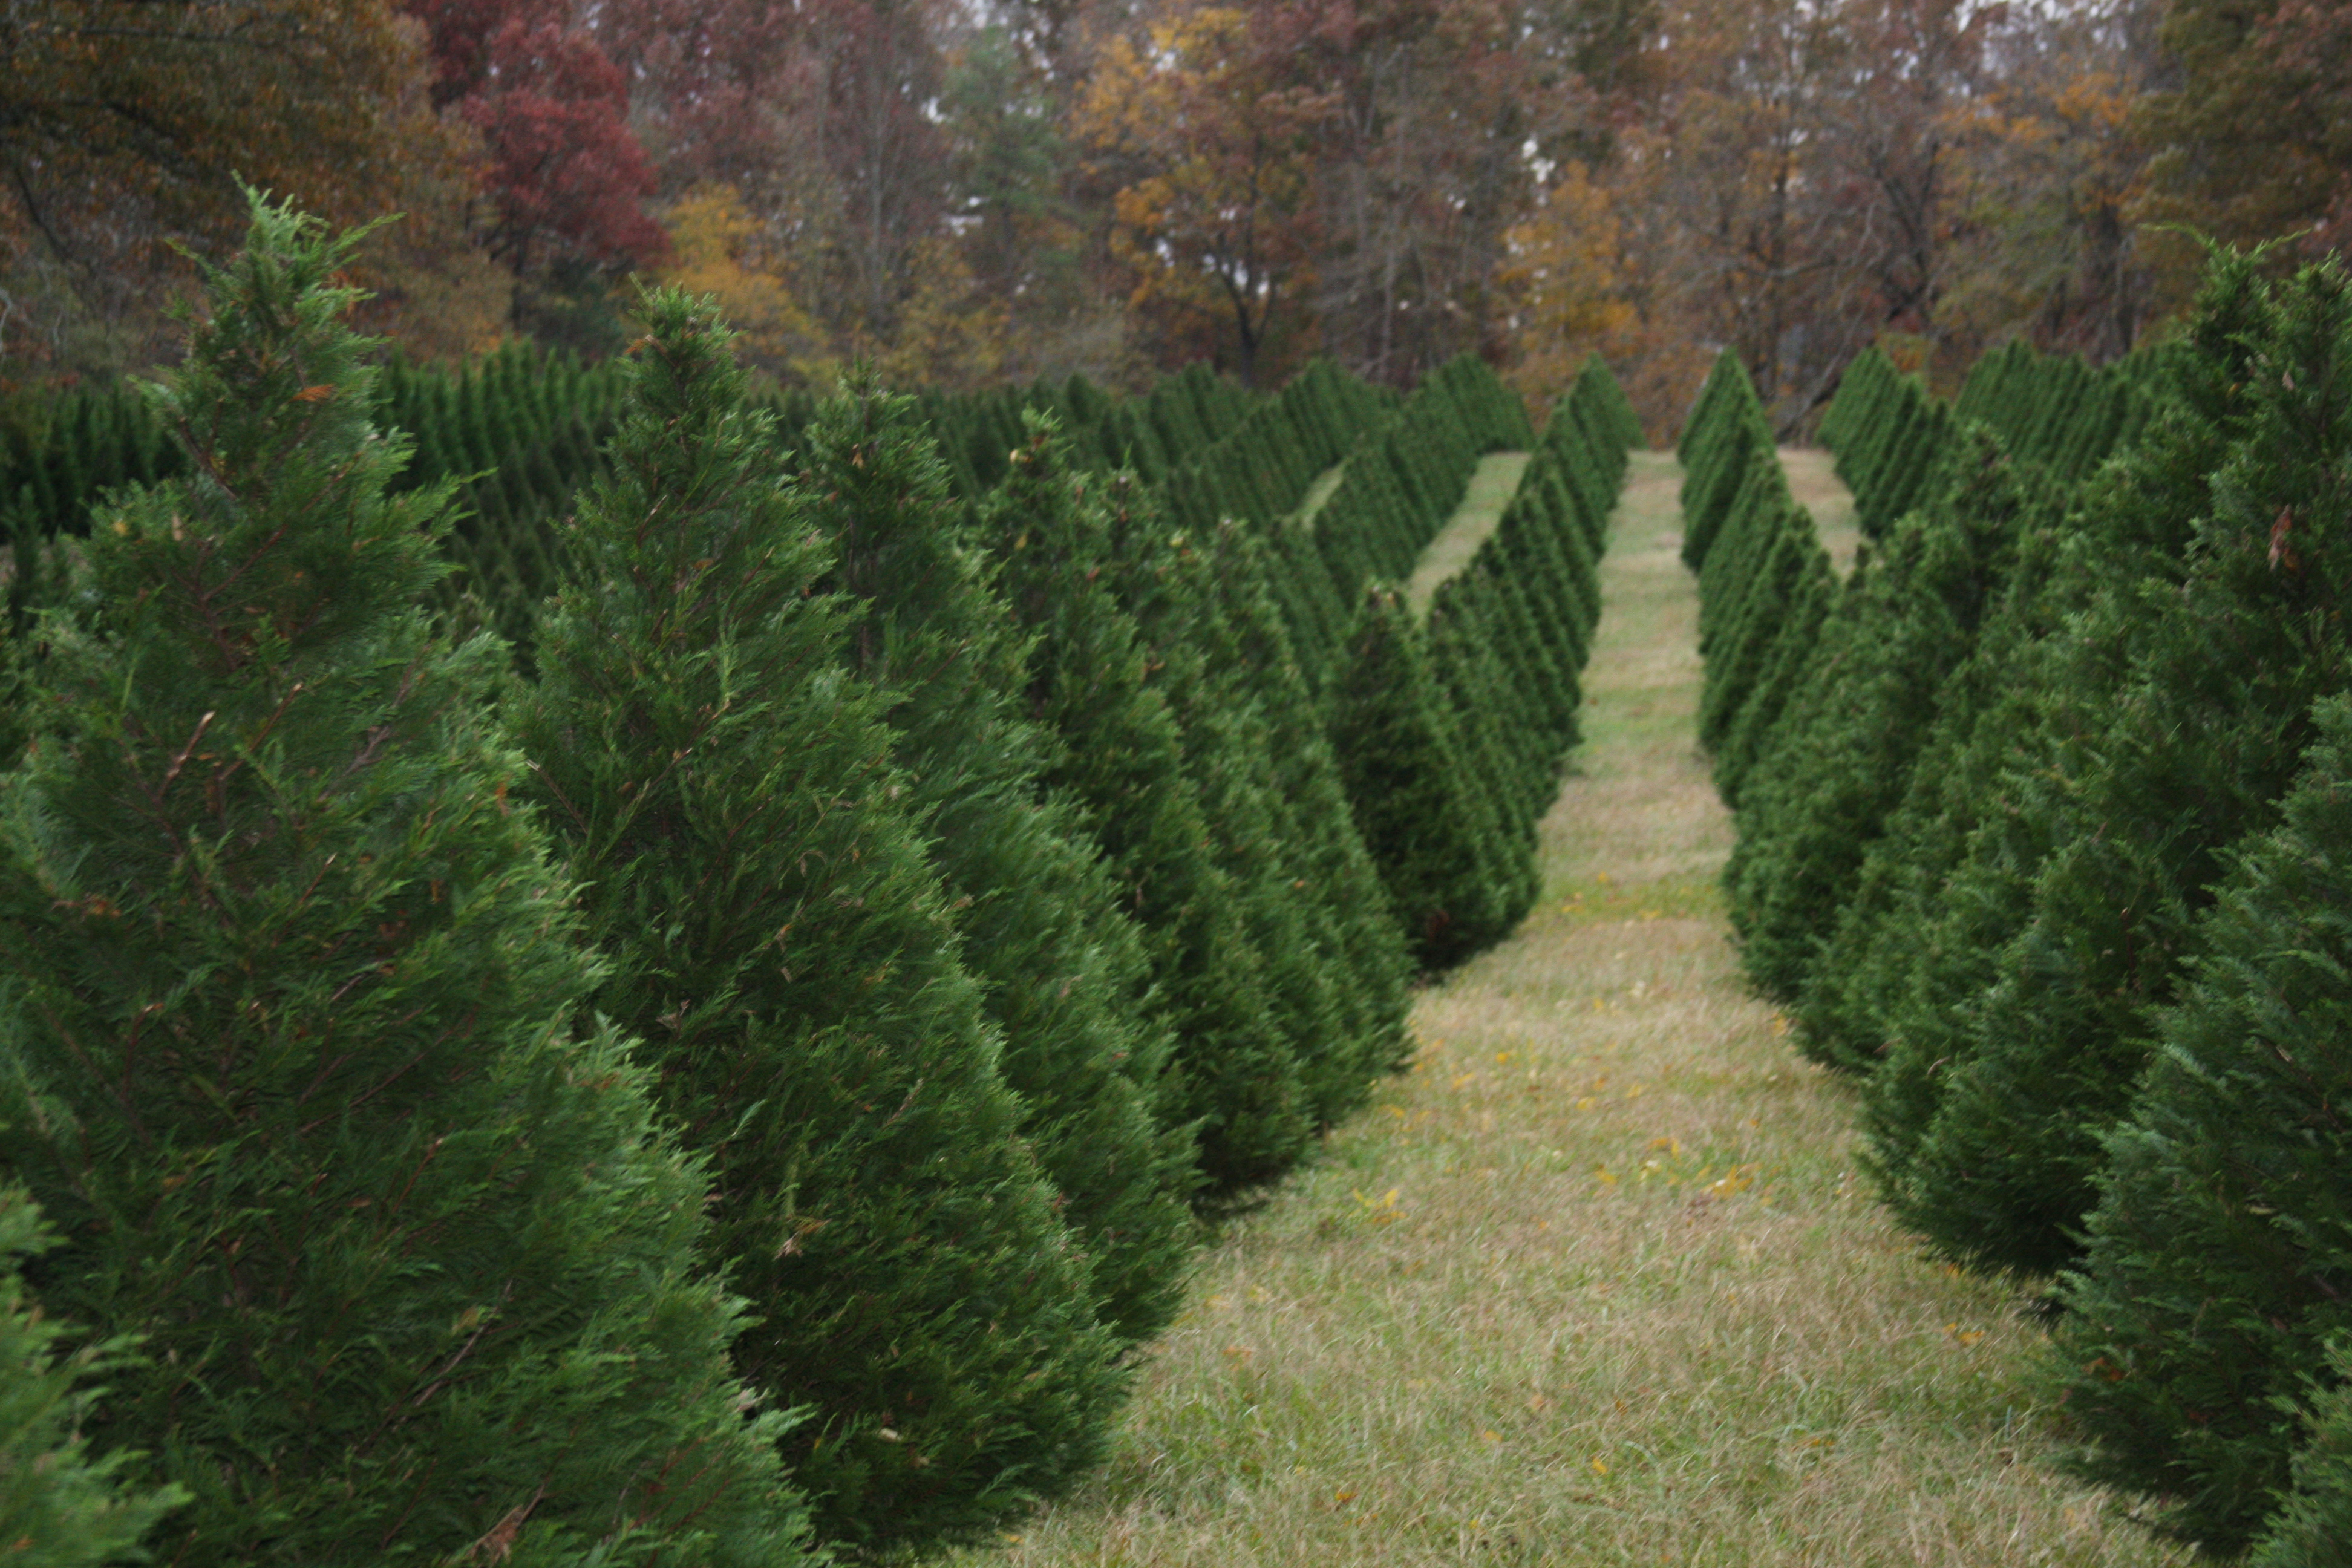 After Christmas, your festive tree can be recycled in many ways.